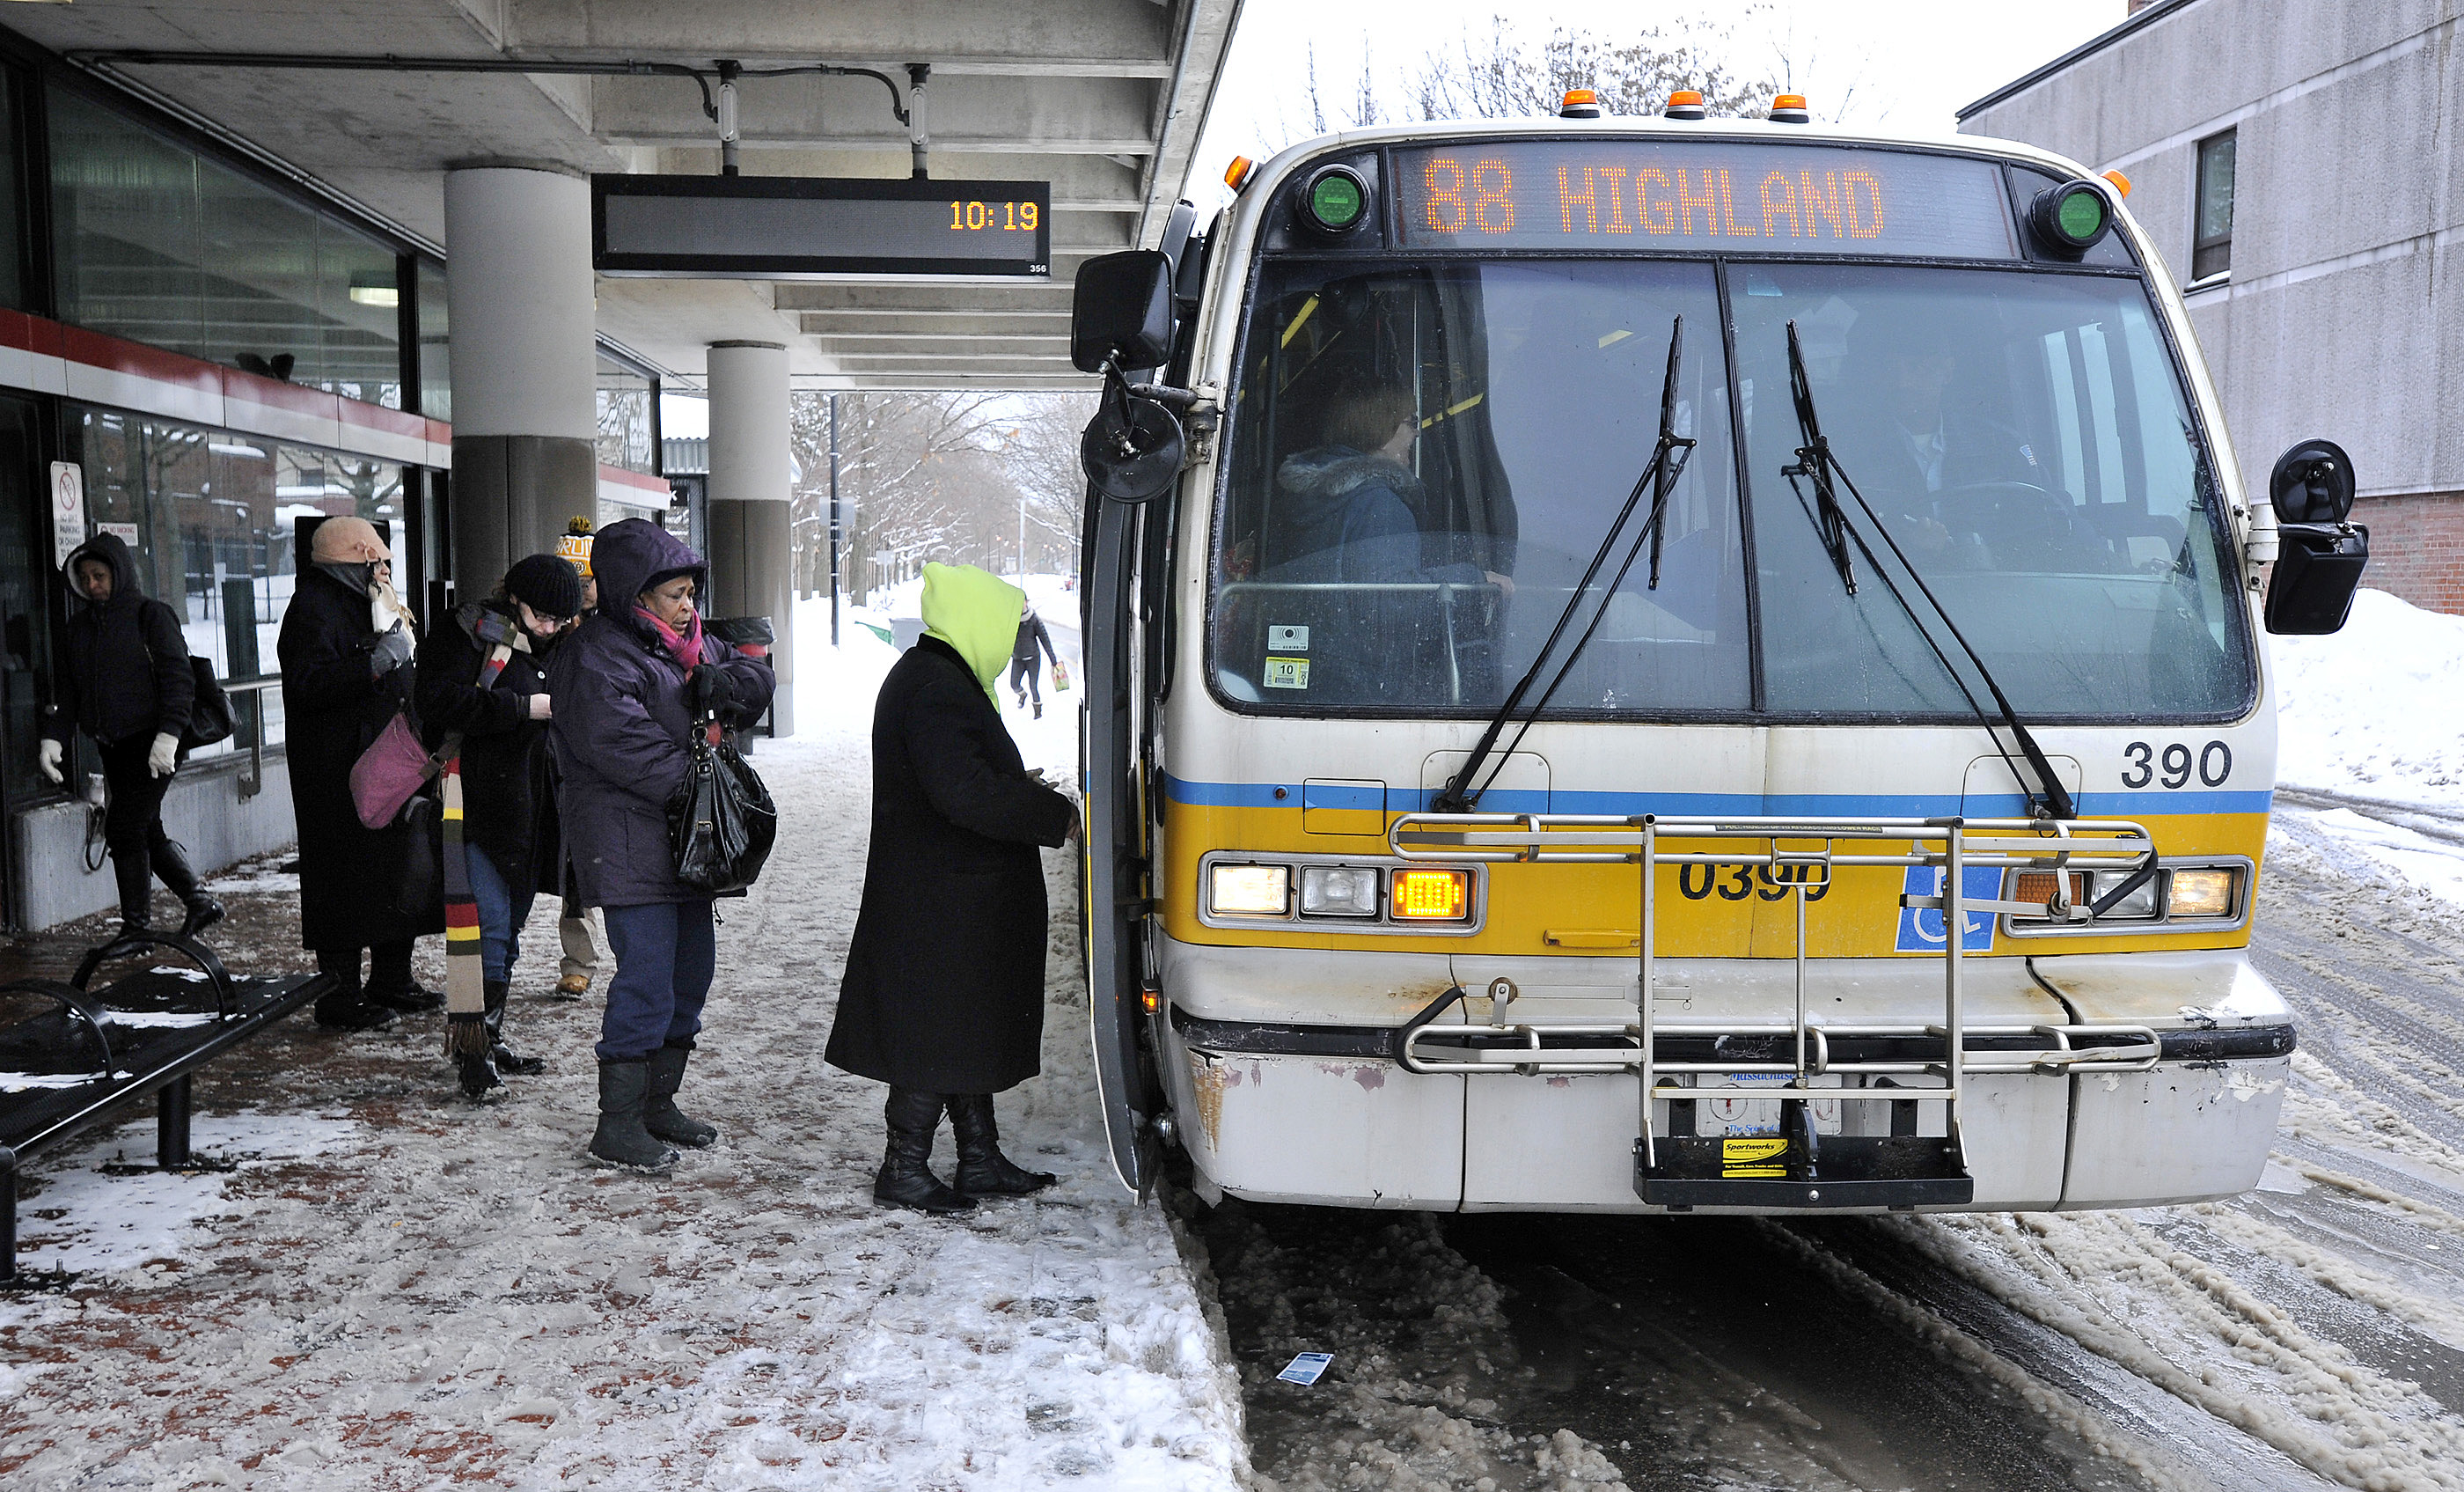 Photo: Bus in snowy Massachusetts (AP Photo)